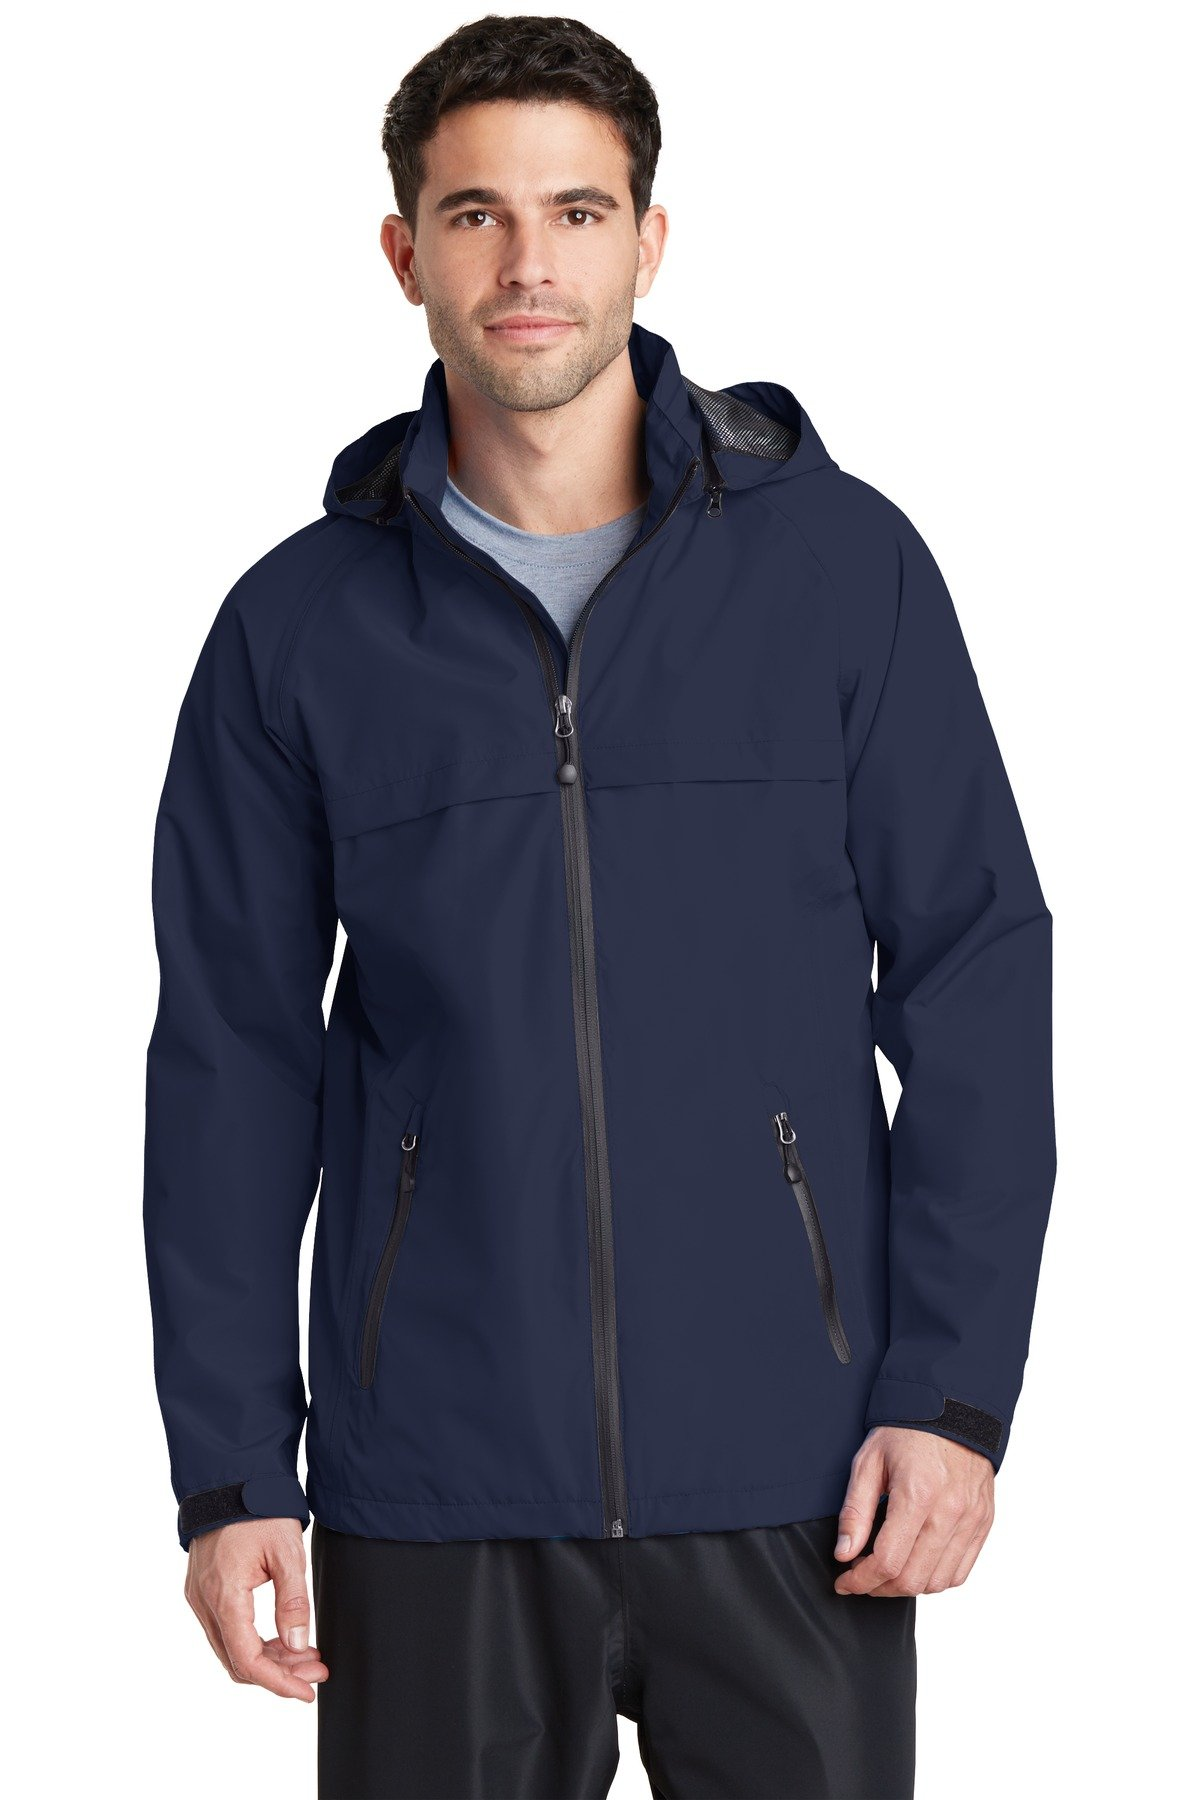 Port Authority Torrent Waterproof Jacket. J333 True Navy M by Port Authority